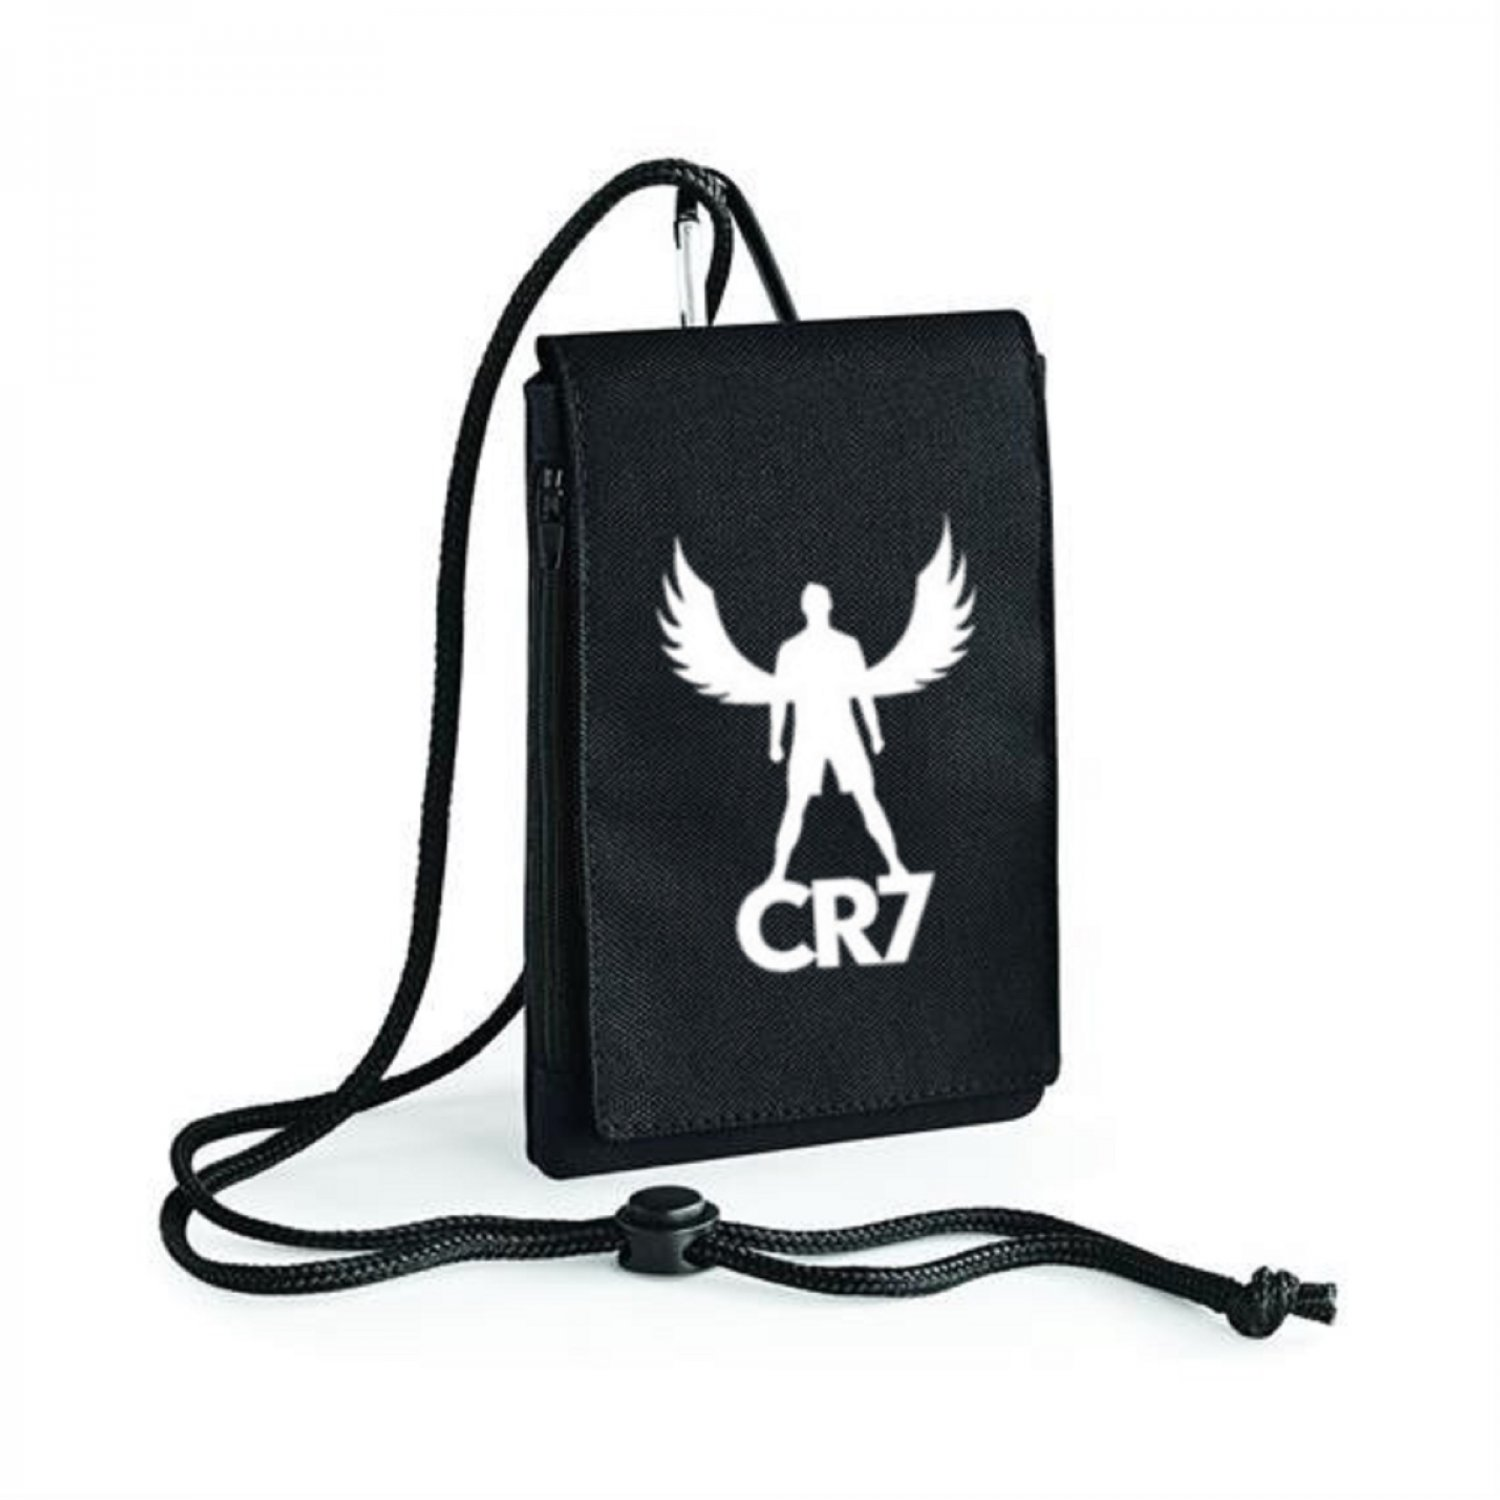 Cristiano Ronaldo CR7 Inspired Bagbase Phone Pouch